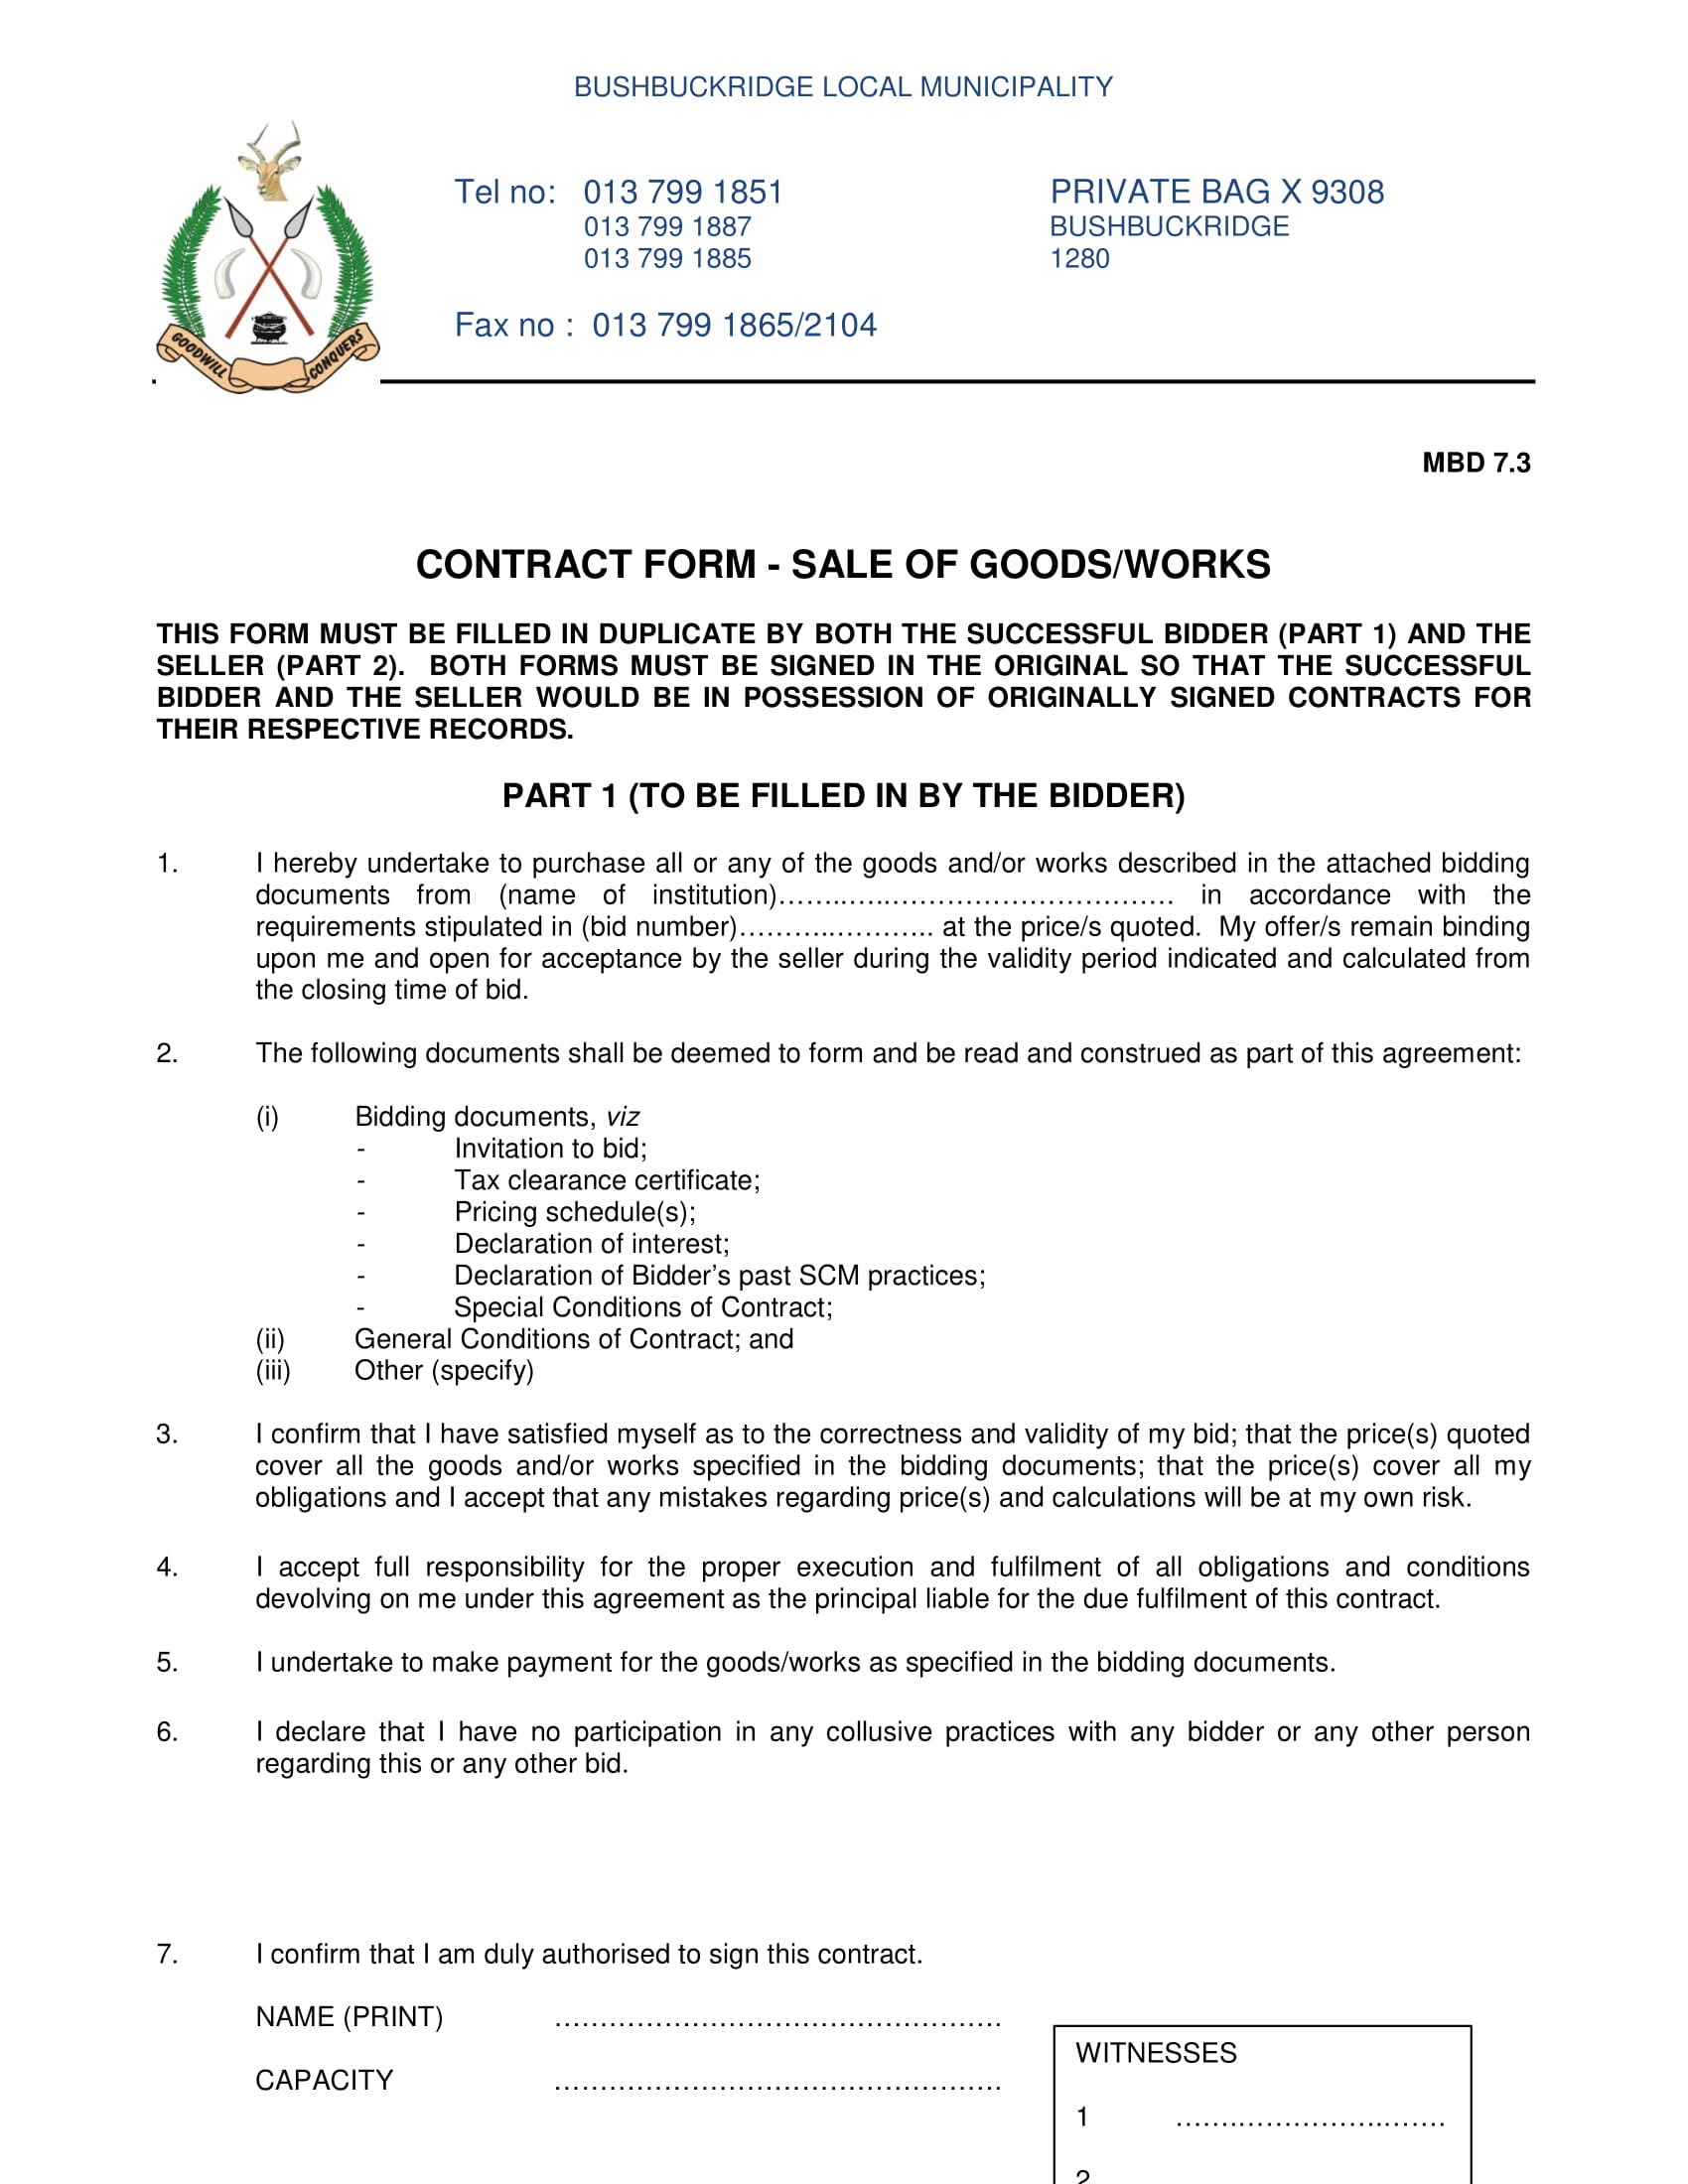 sale of goods contract form 1